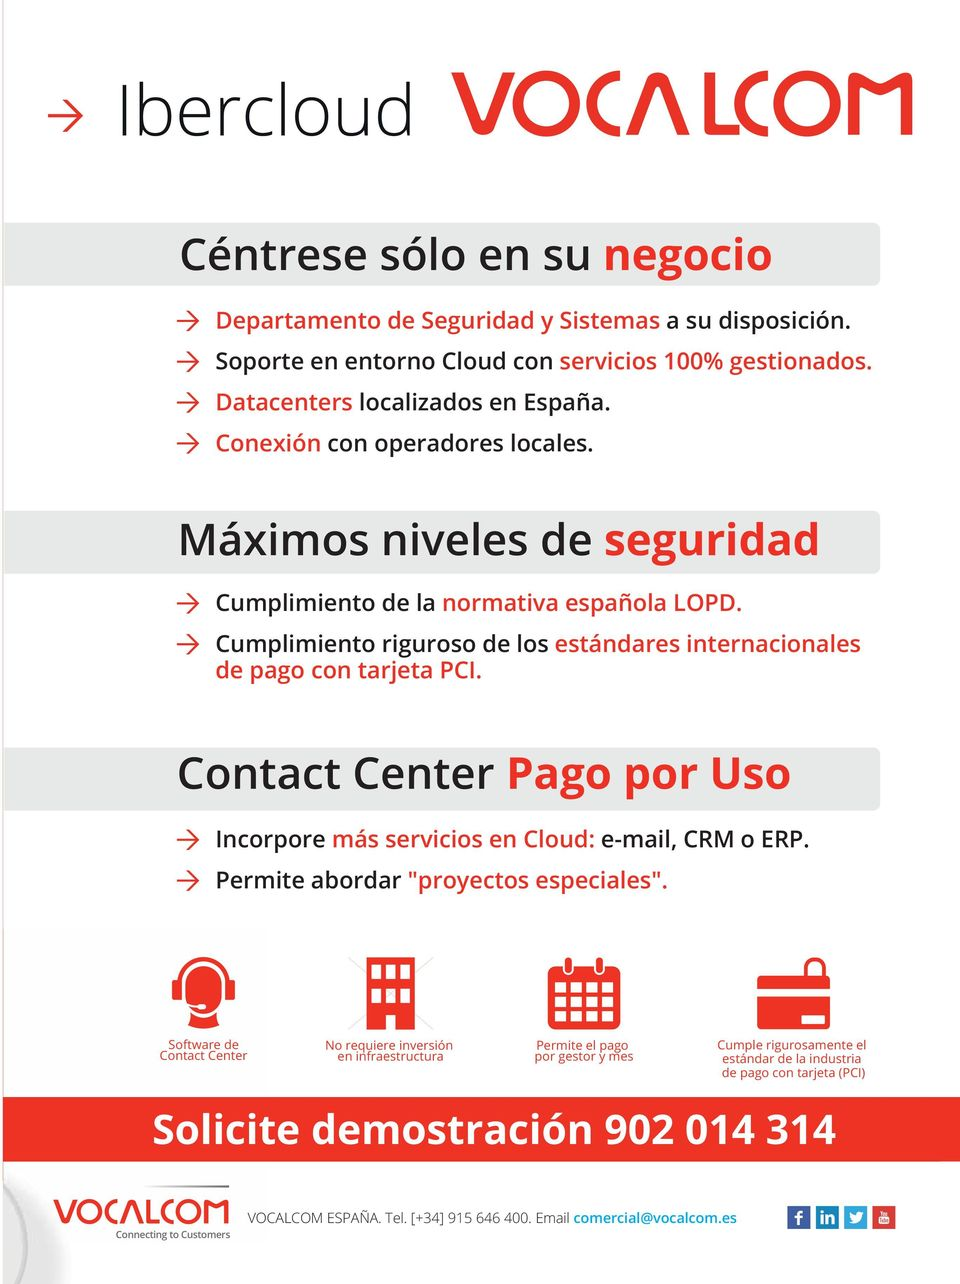 "Contact Center Pago por Uso Incorpore más servicios en Cloud: e-mail, CRM o ERP. Permite abordar ""proyectos especiales""."